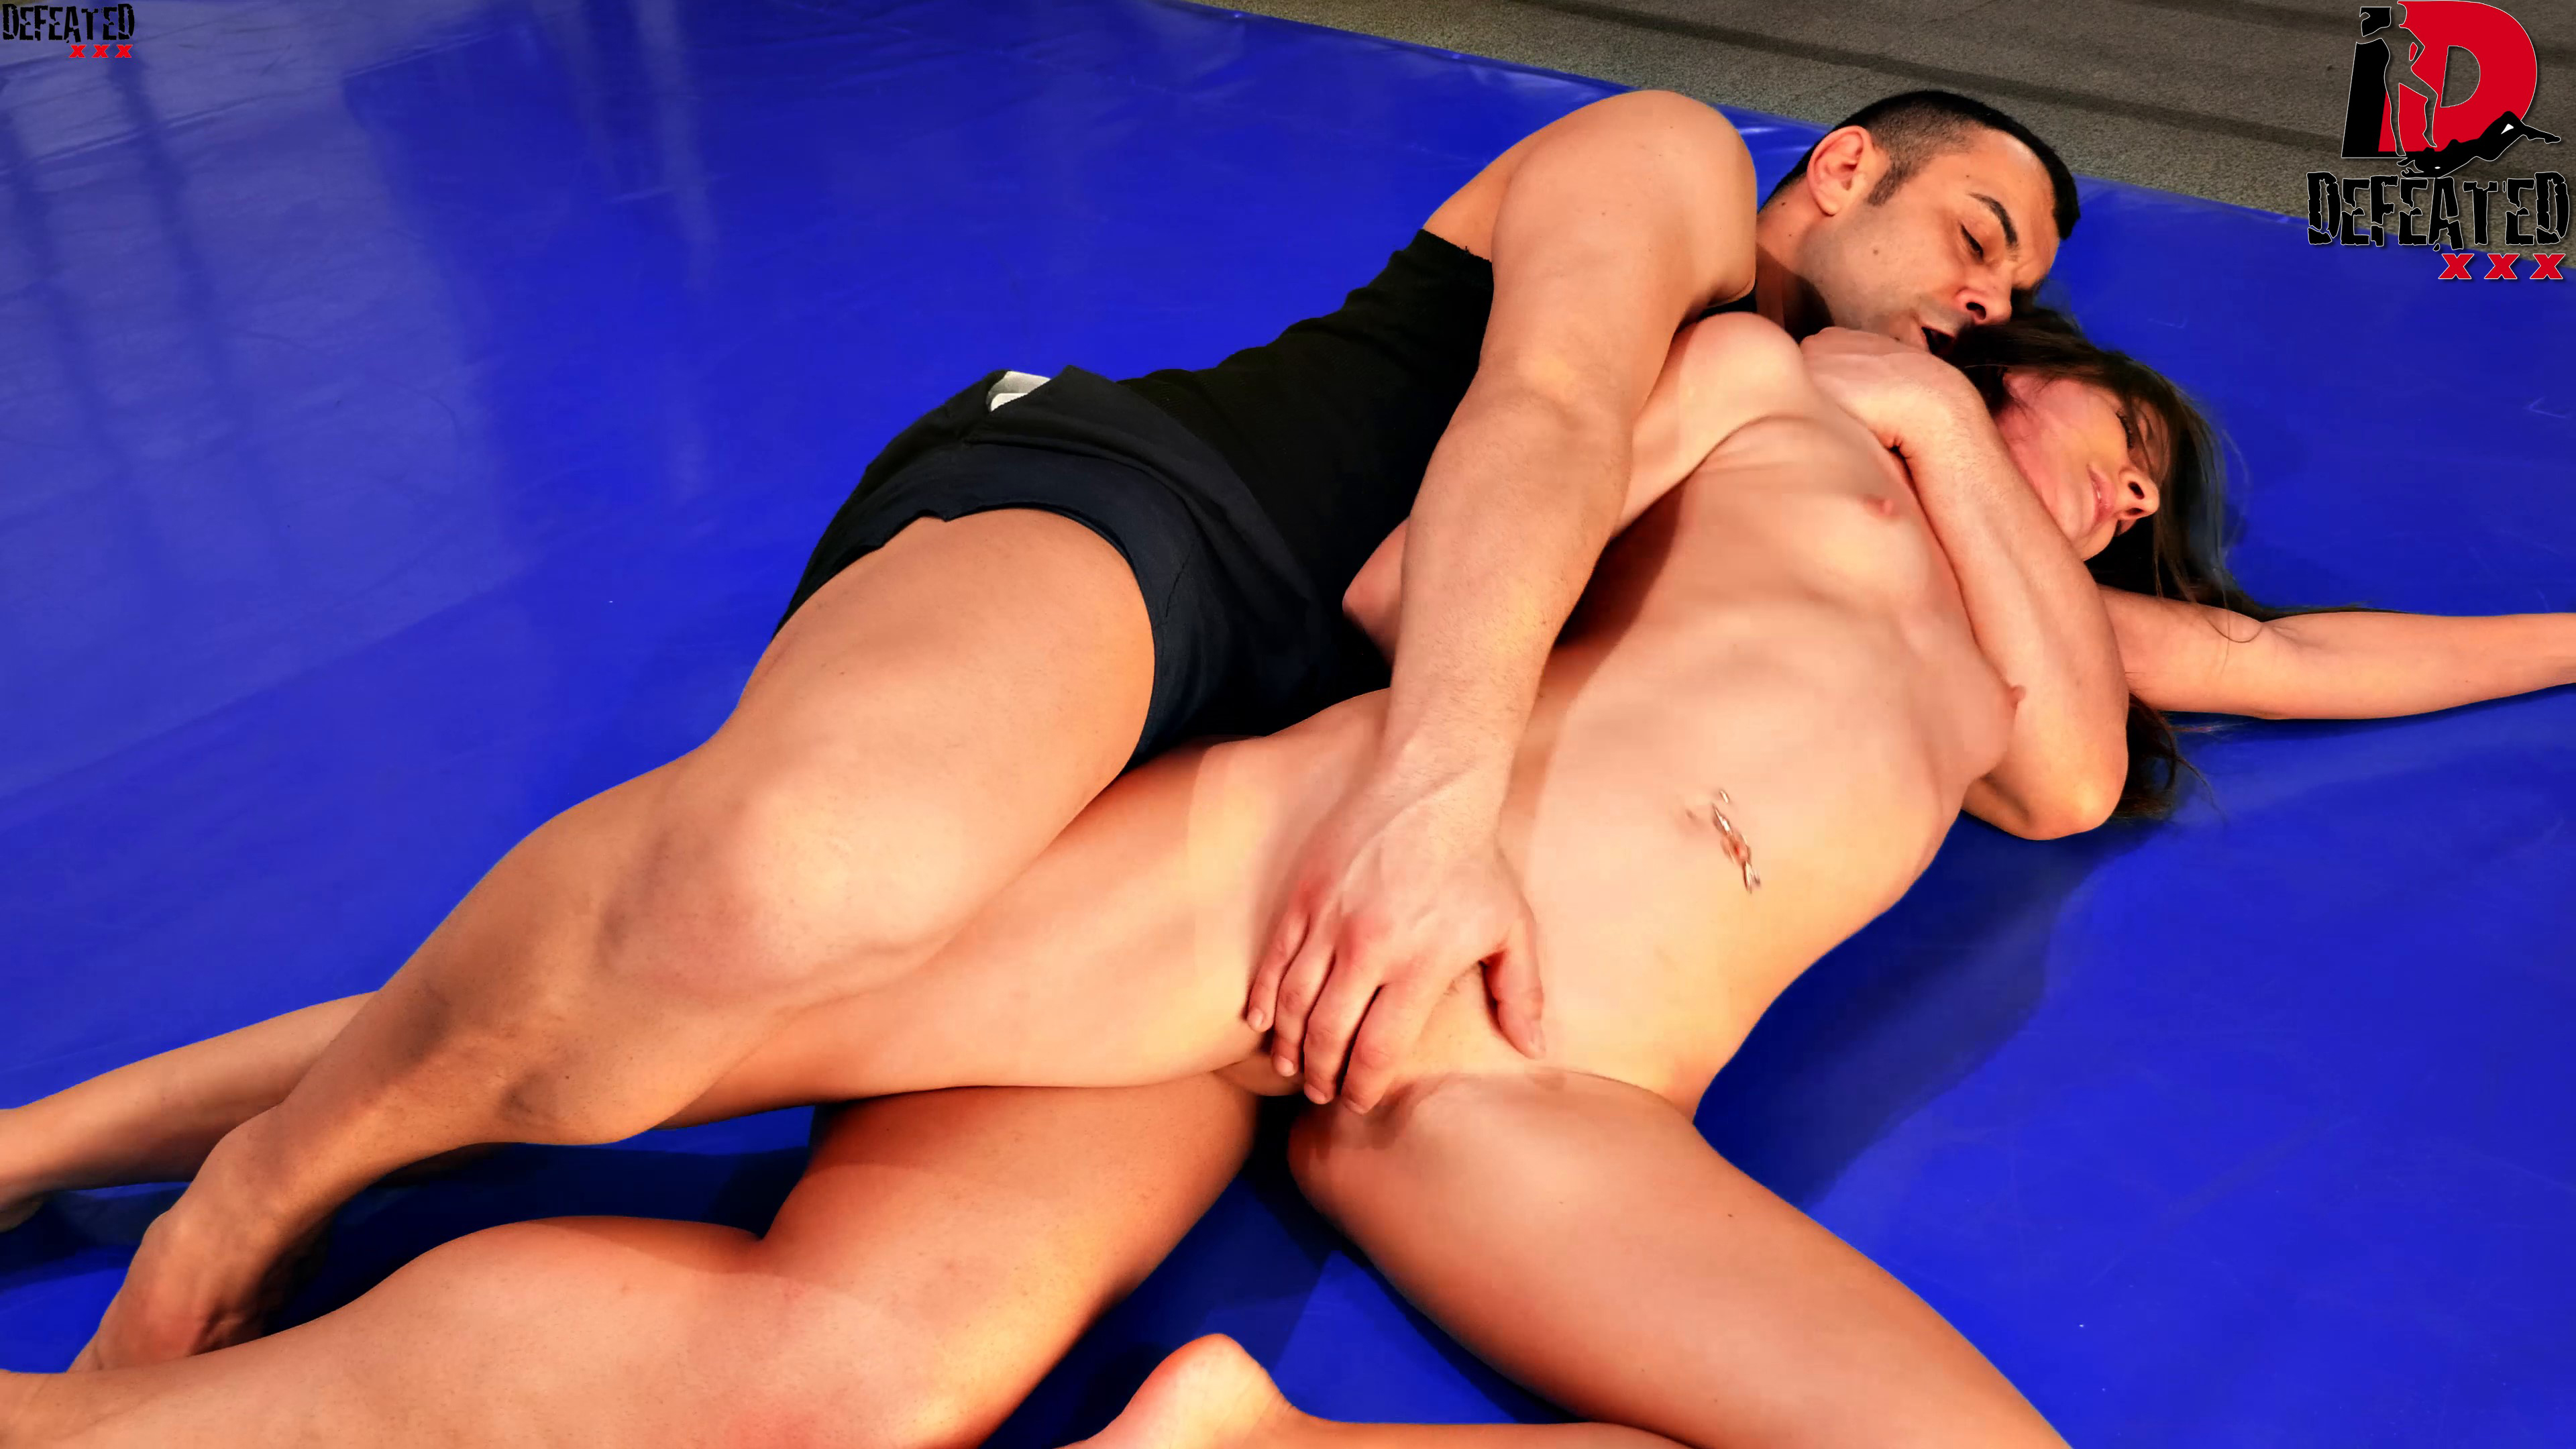 DEFEATED-MXD66---Amirah-Antonio-(125)